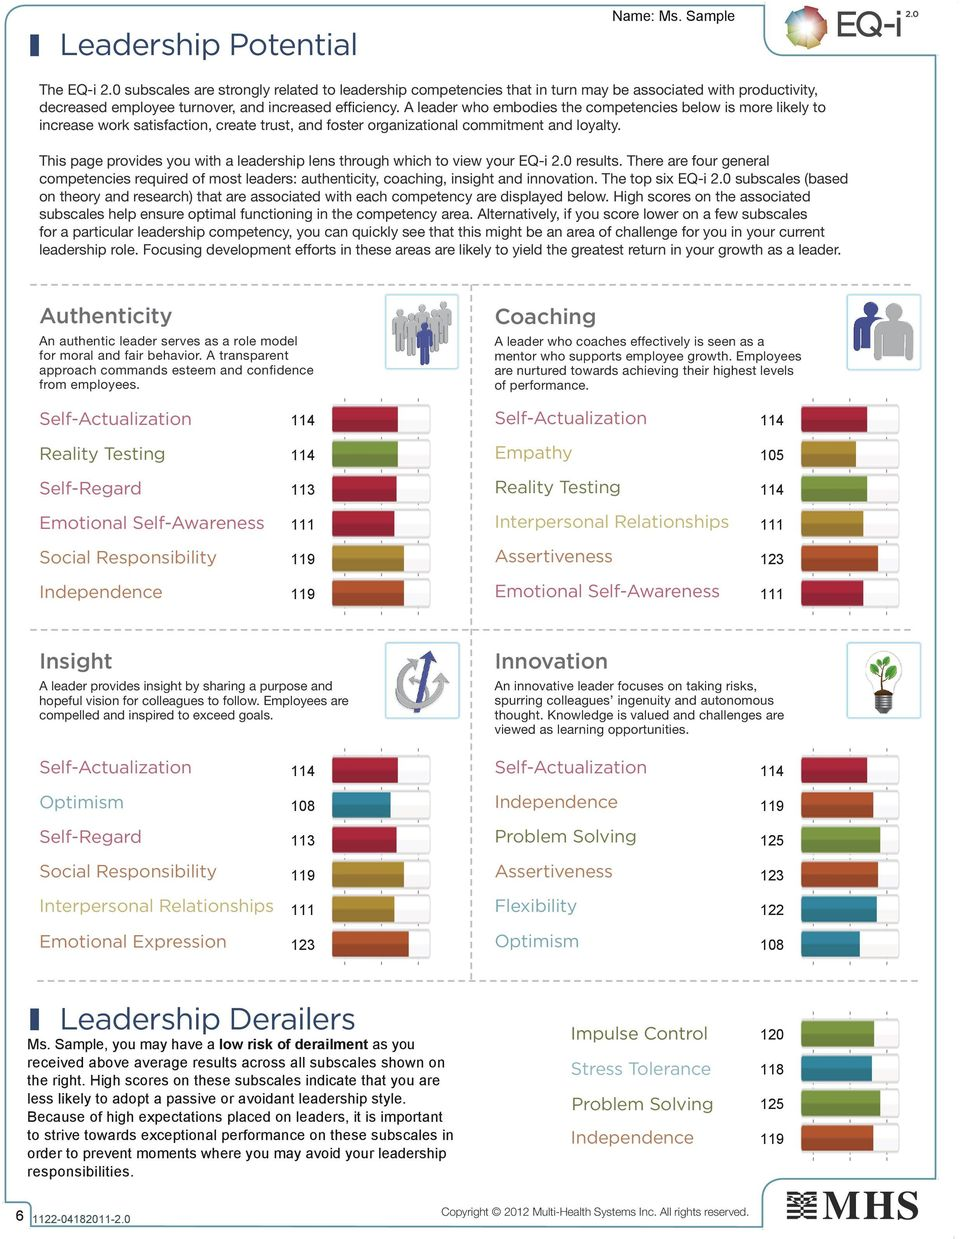 This page provides you with a leadership lens through which to view your EQ-i 2.0 results. There are four general competencies required of most leaders: authenticity, coaching, insight and innovation.